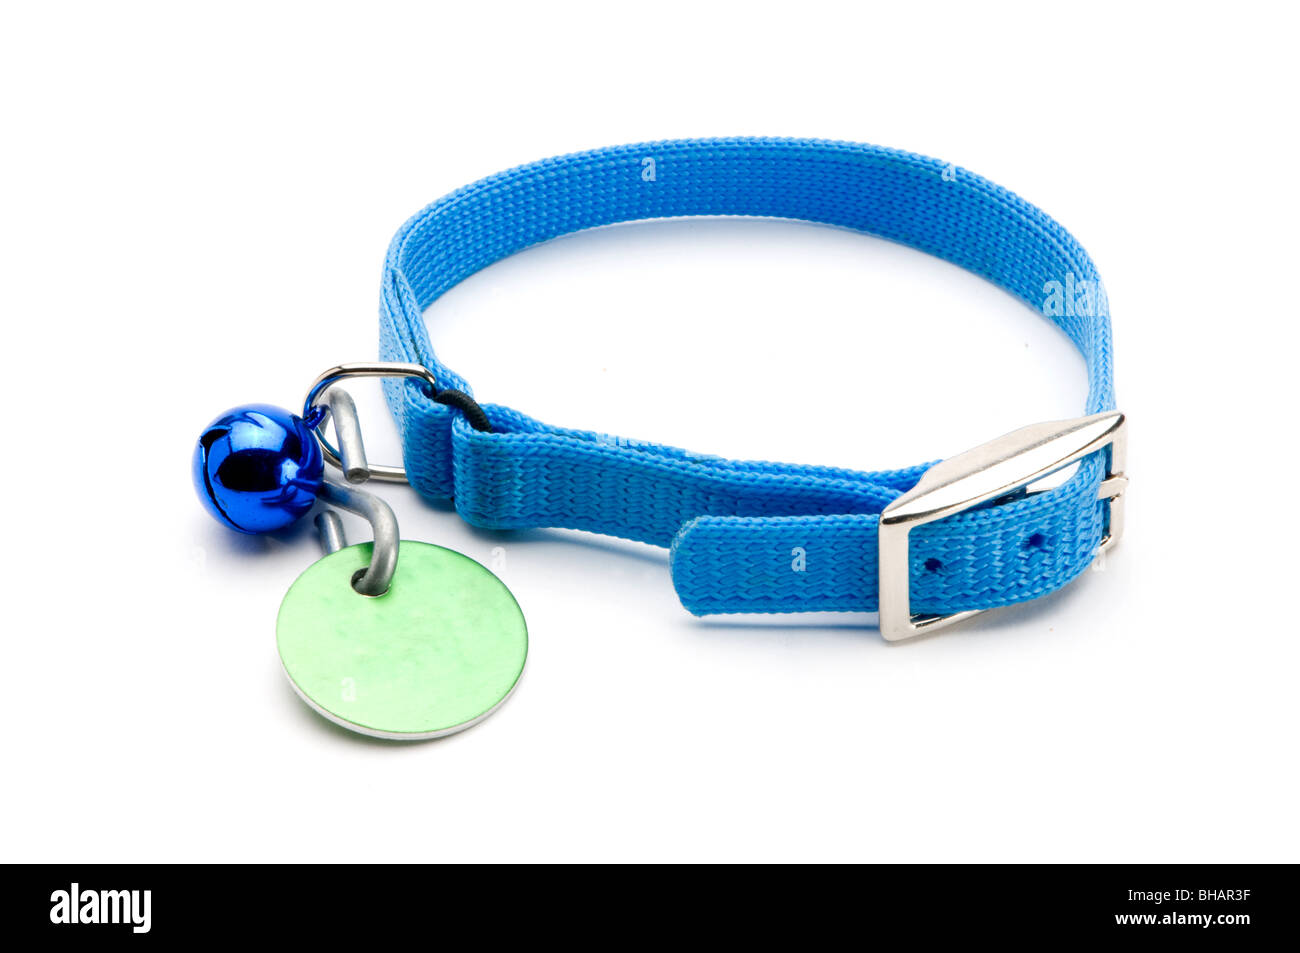 PET COLLAR ON WHITE Stock Photo